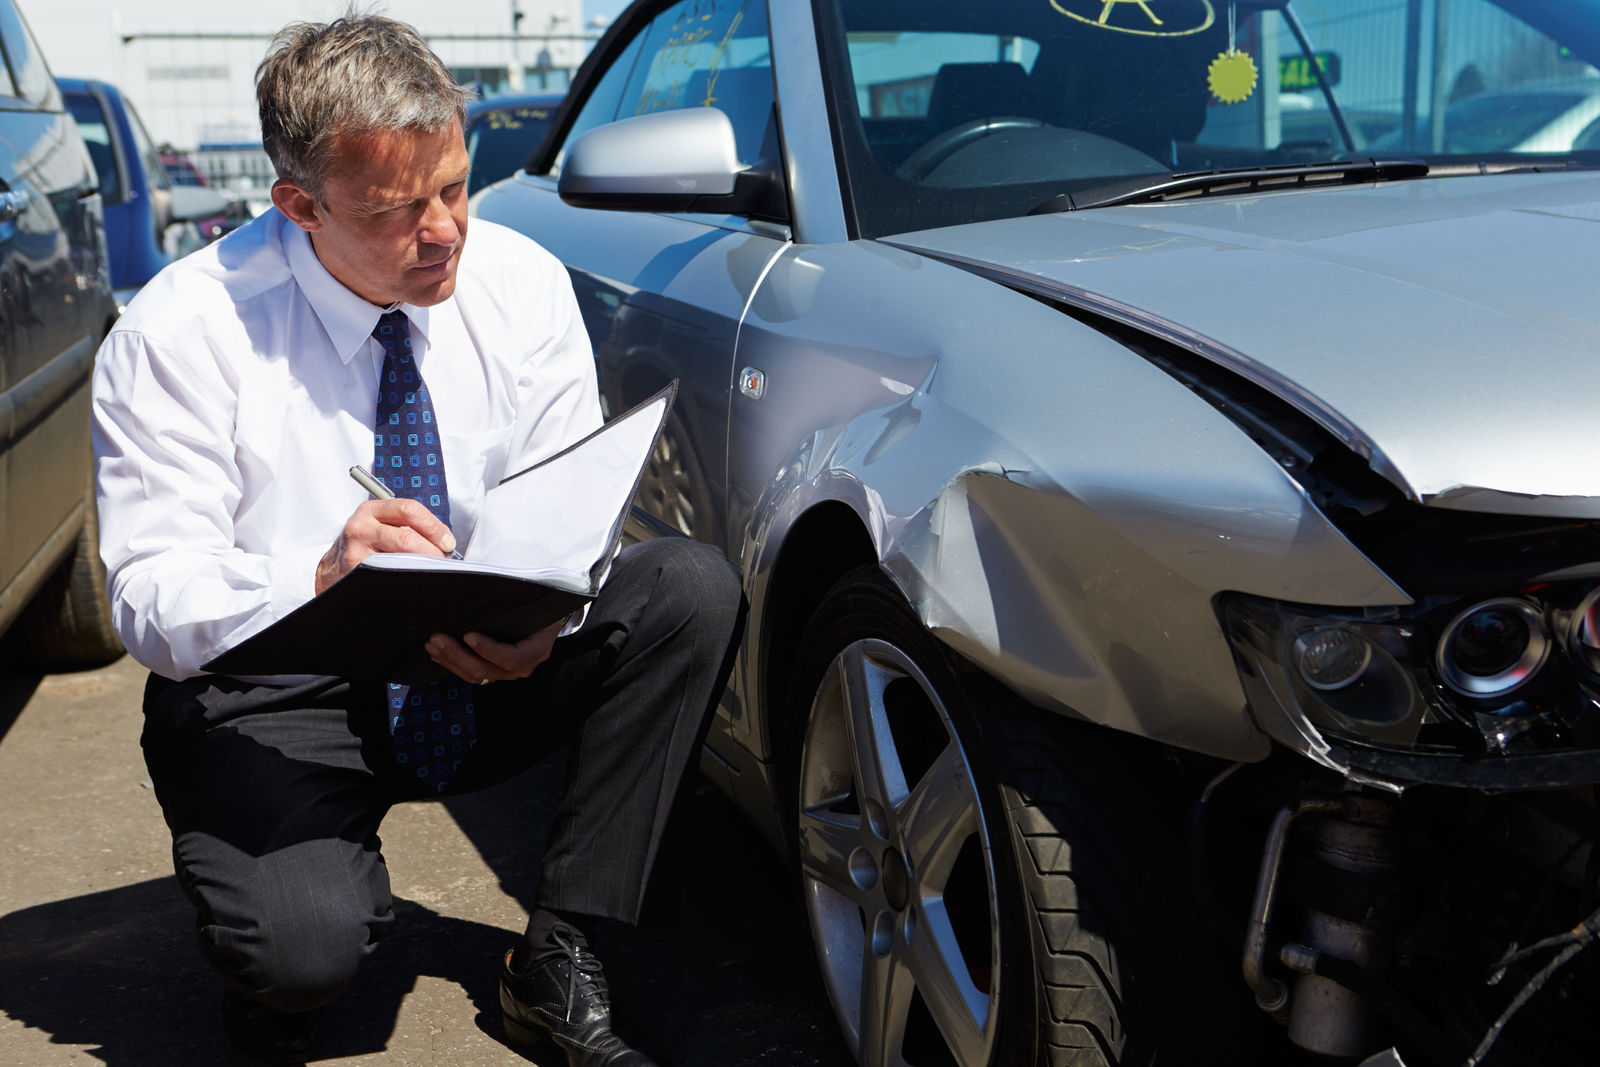 How to Buy a Salvage Car From an Insurance Company